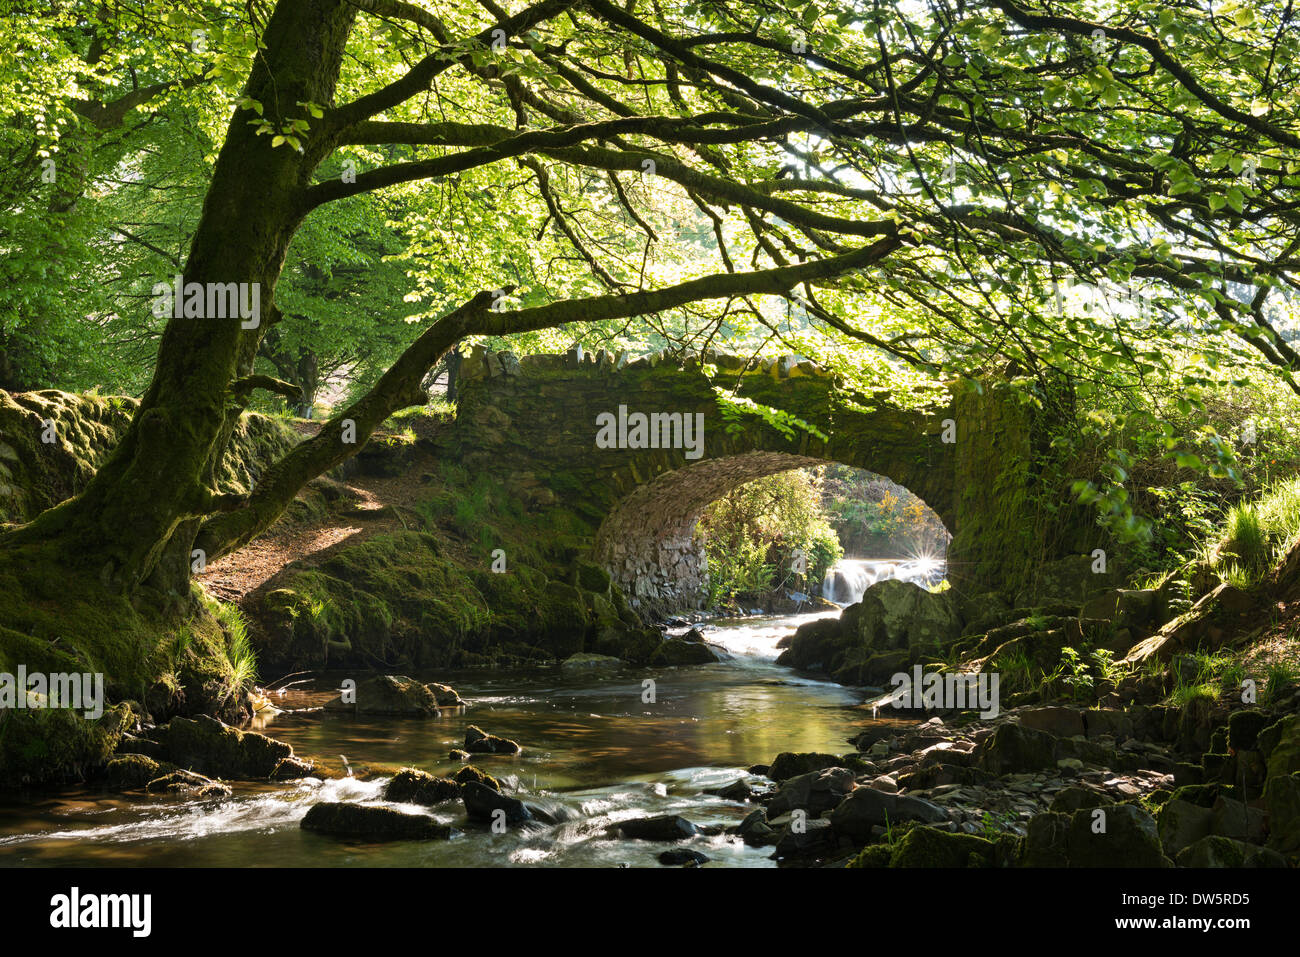 Picturesque Robber's Bridge near Oare, Exmoor, Somerset, England. Spring (May) 2013. - Stock Image